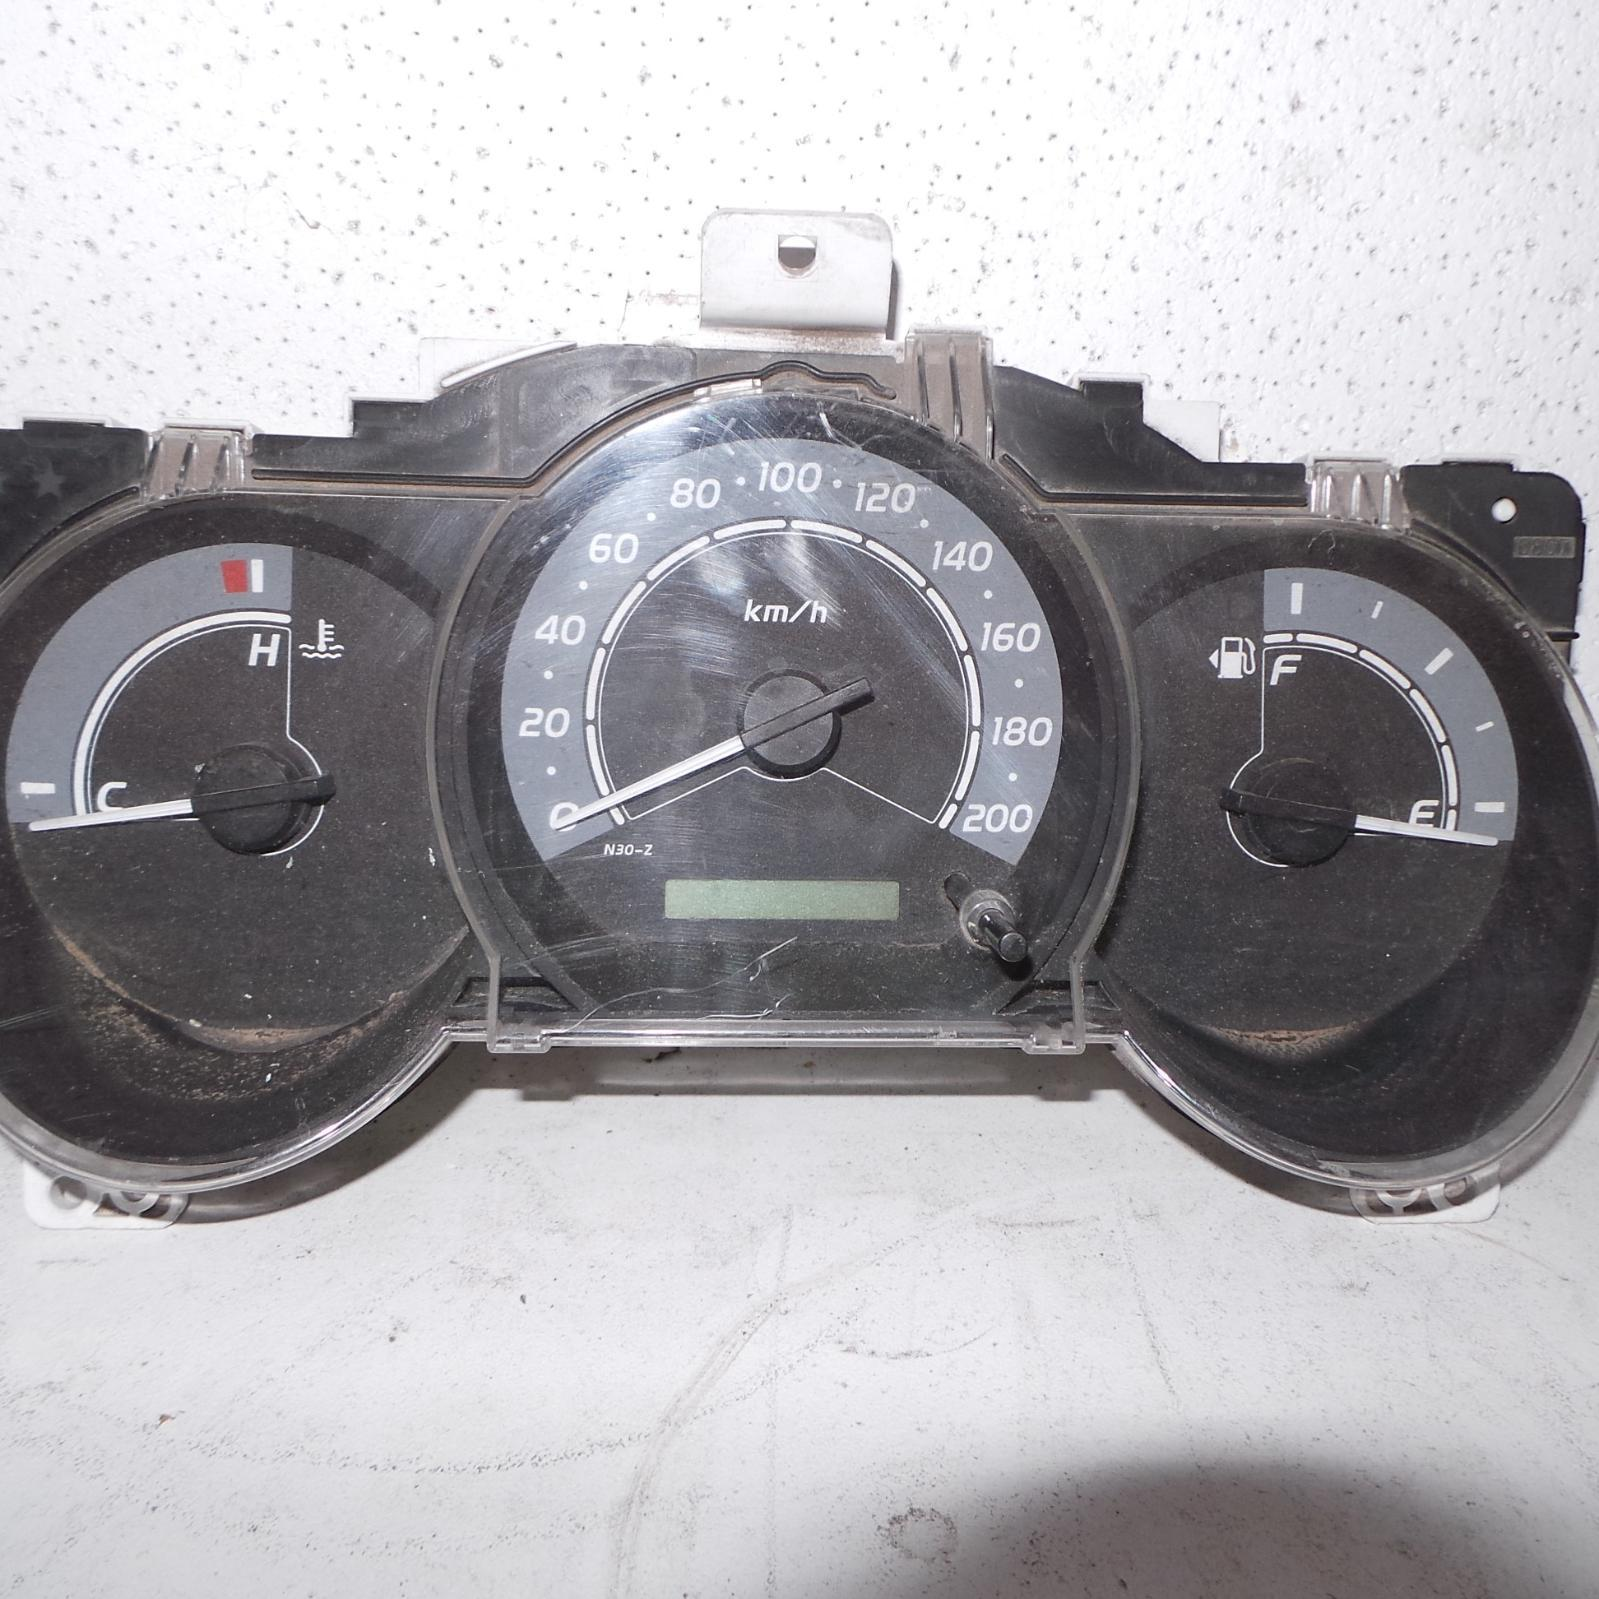 TOYOTA HILUX, Instrument Cluster, PETROL, 2.7, WORKMATE, 03/05-06/11